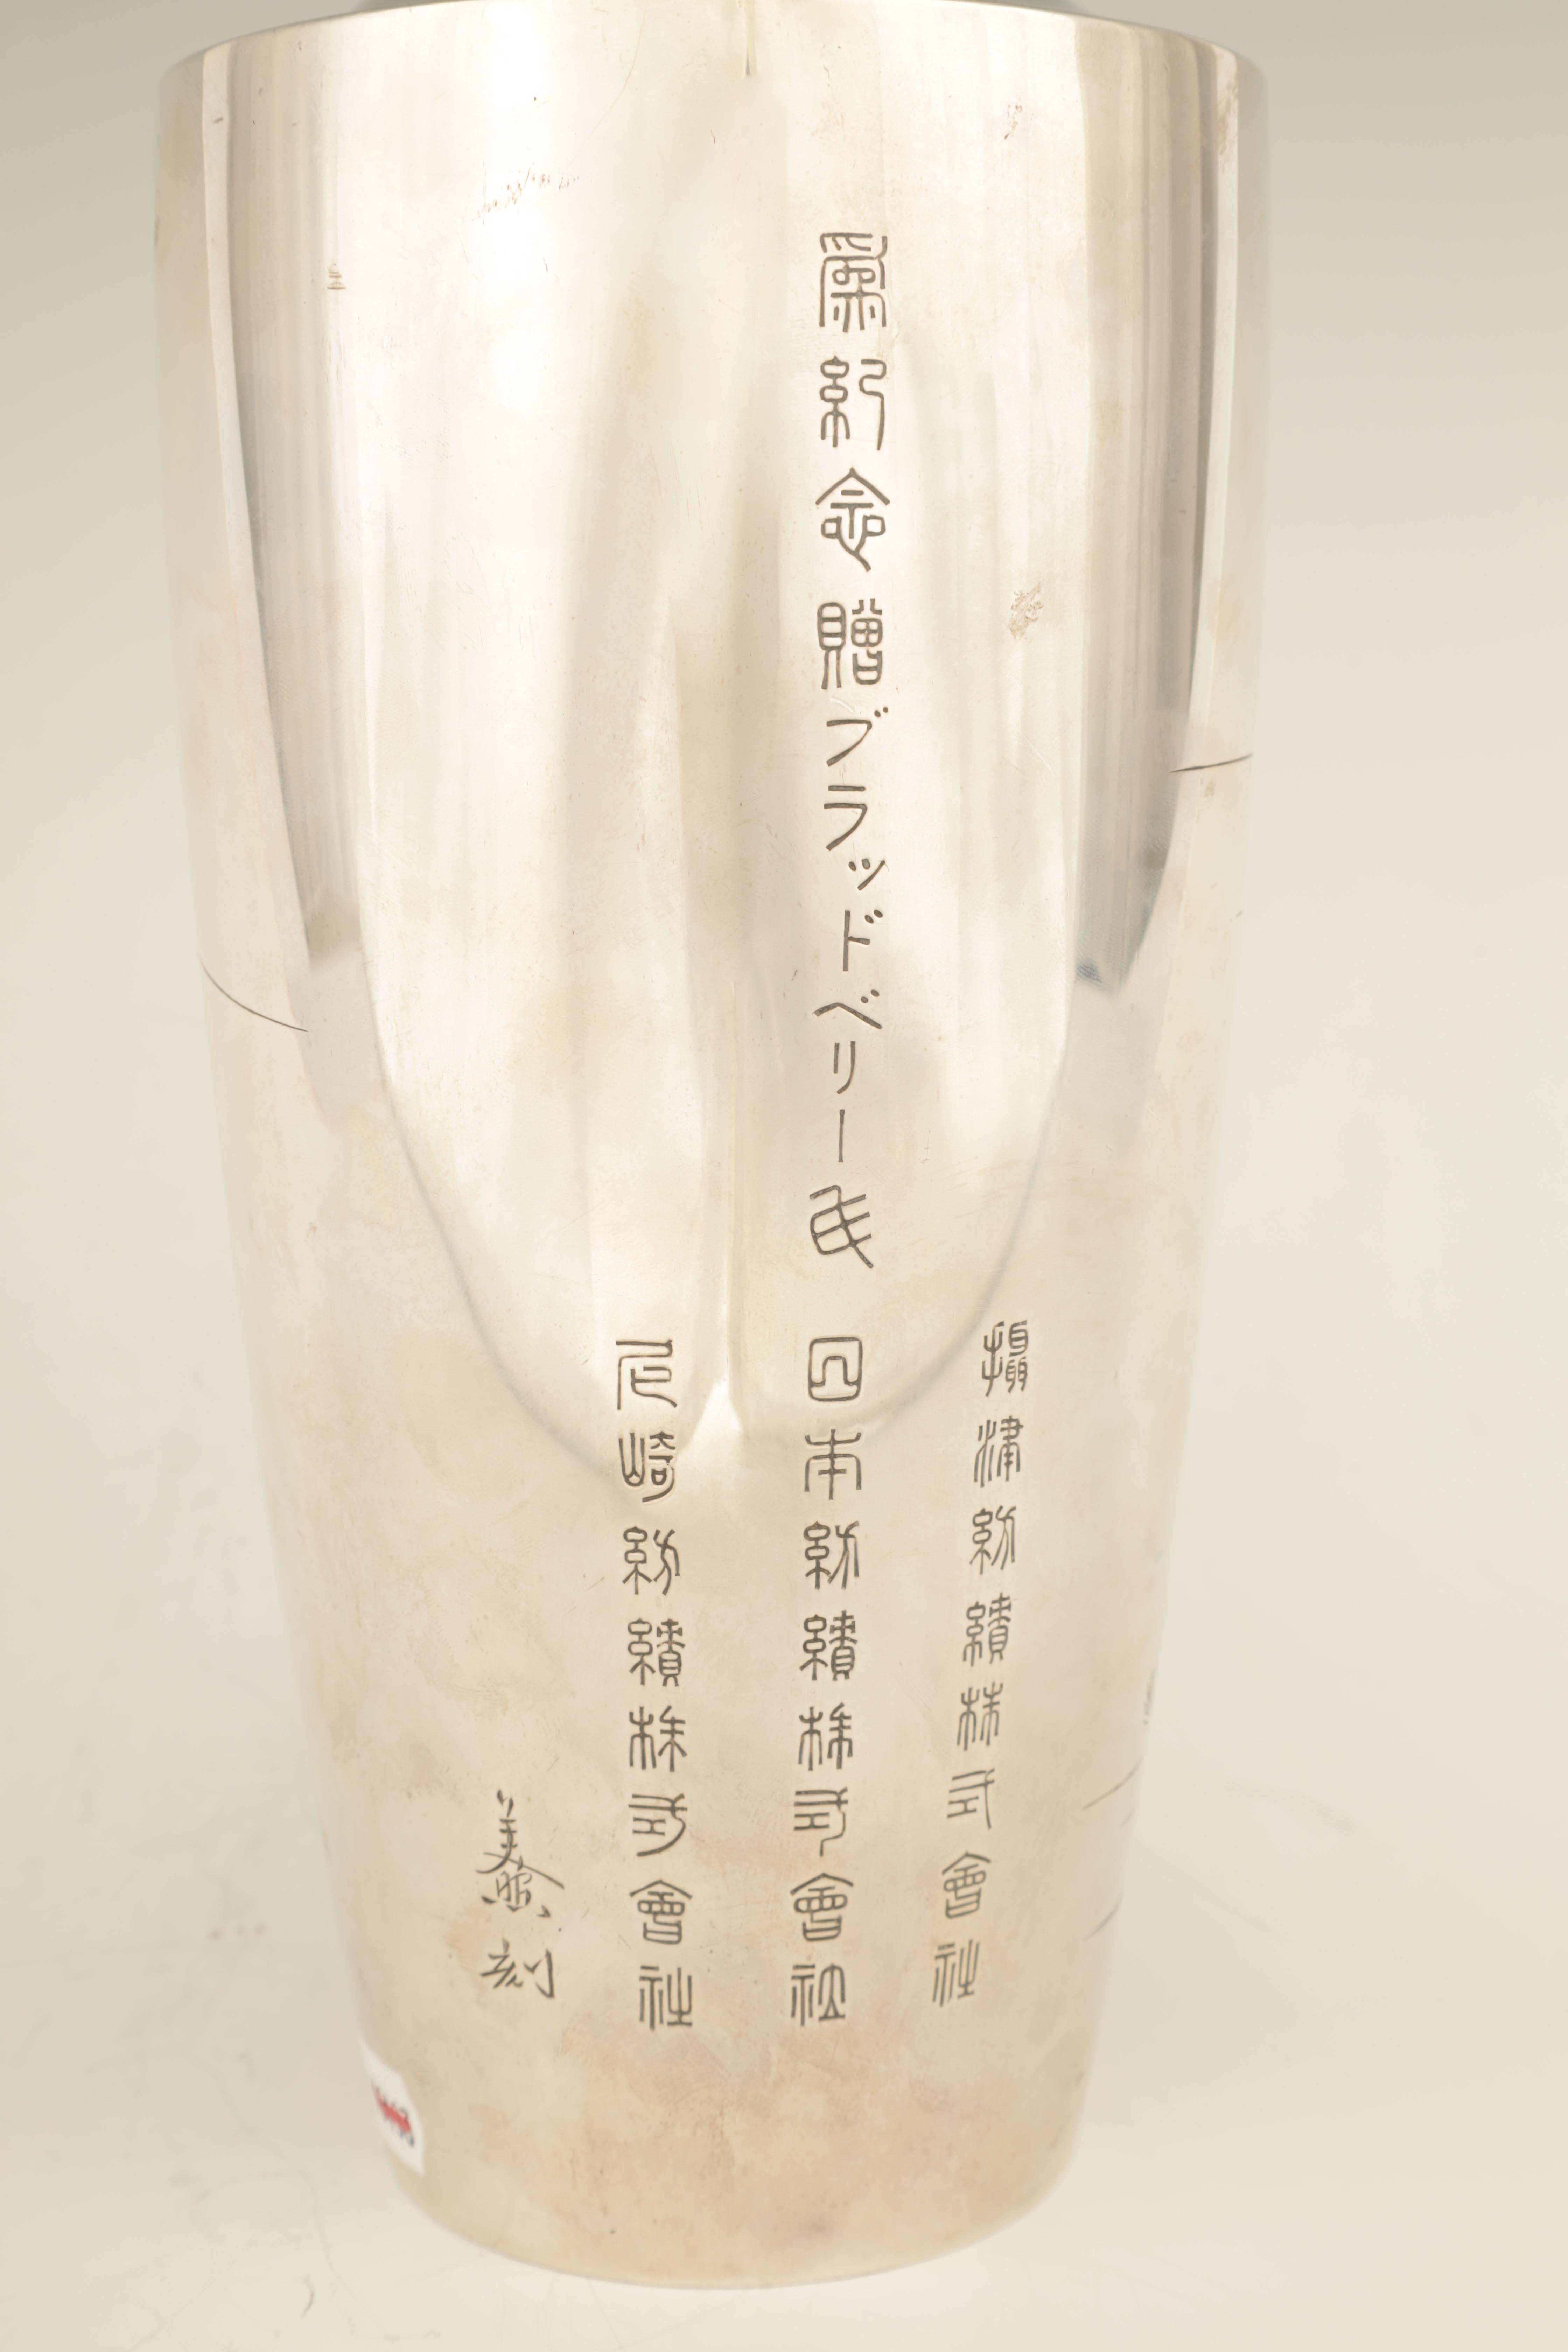 A LARGE JAPANESE MEIJI PERIOD SILVER VASE embellished with gilt highlights and engraved scene of - Image 5 of 6